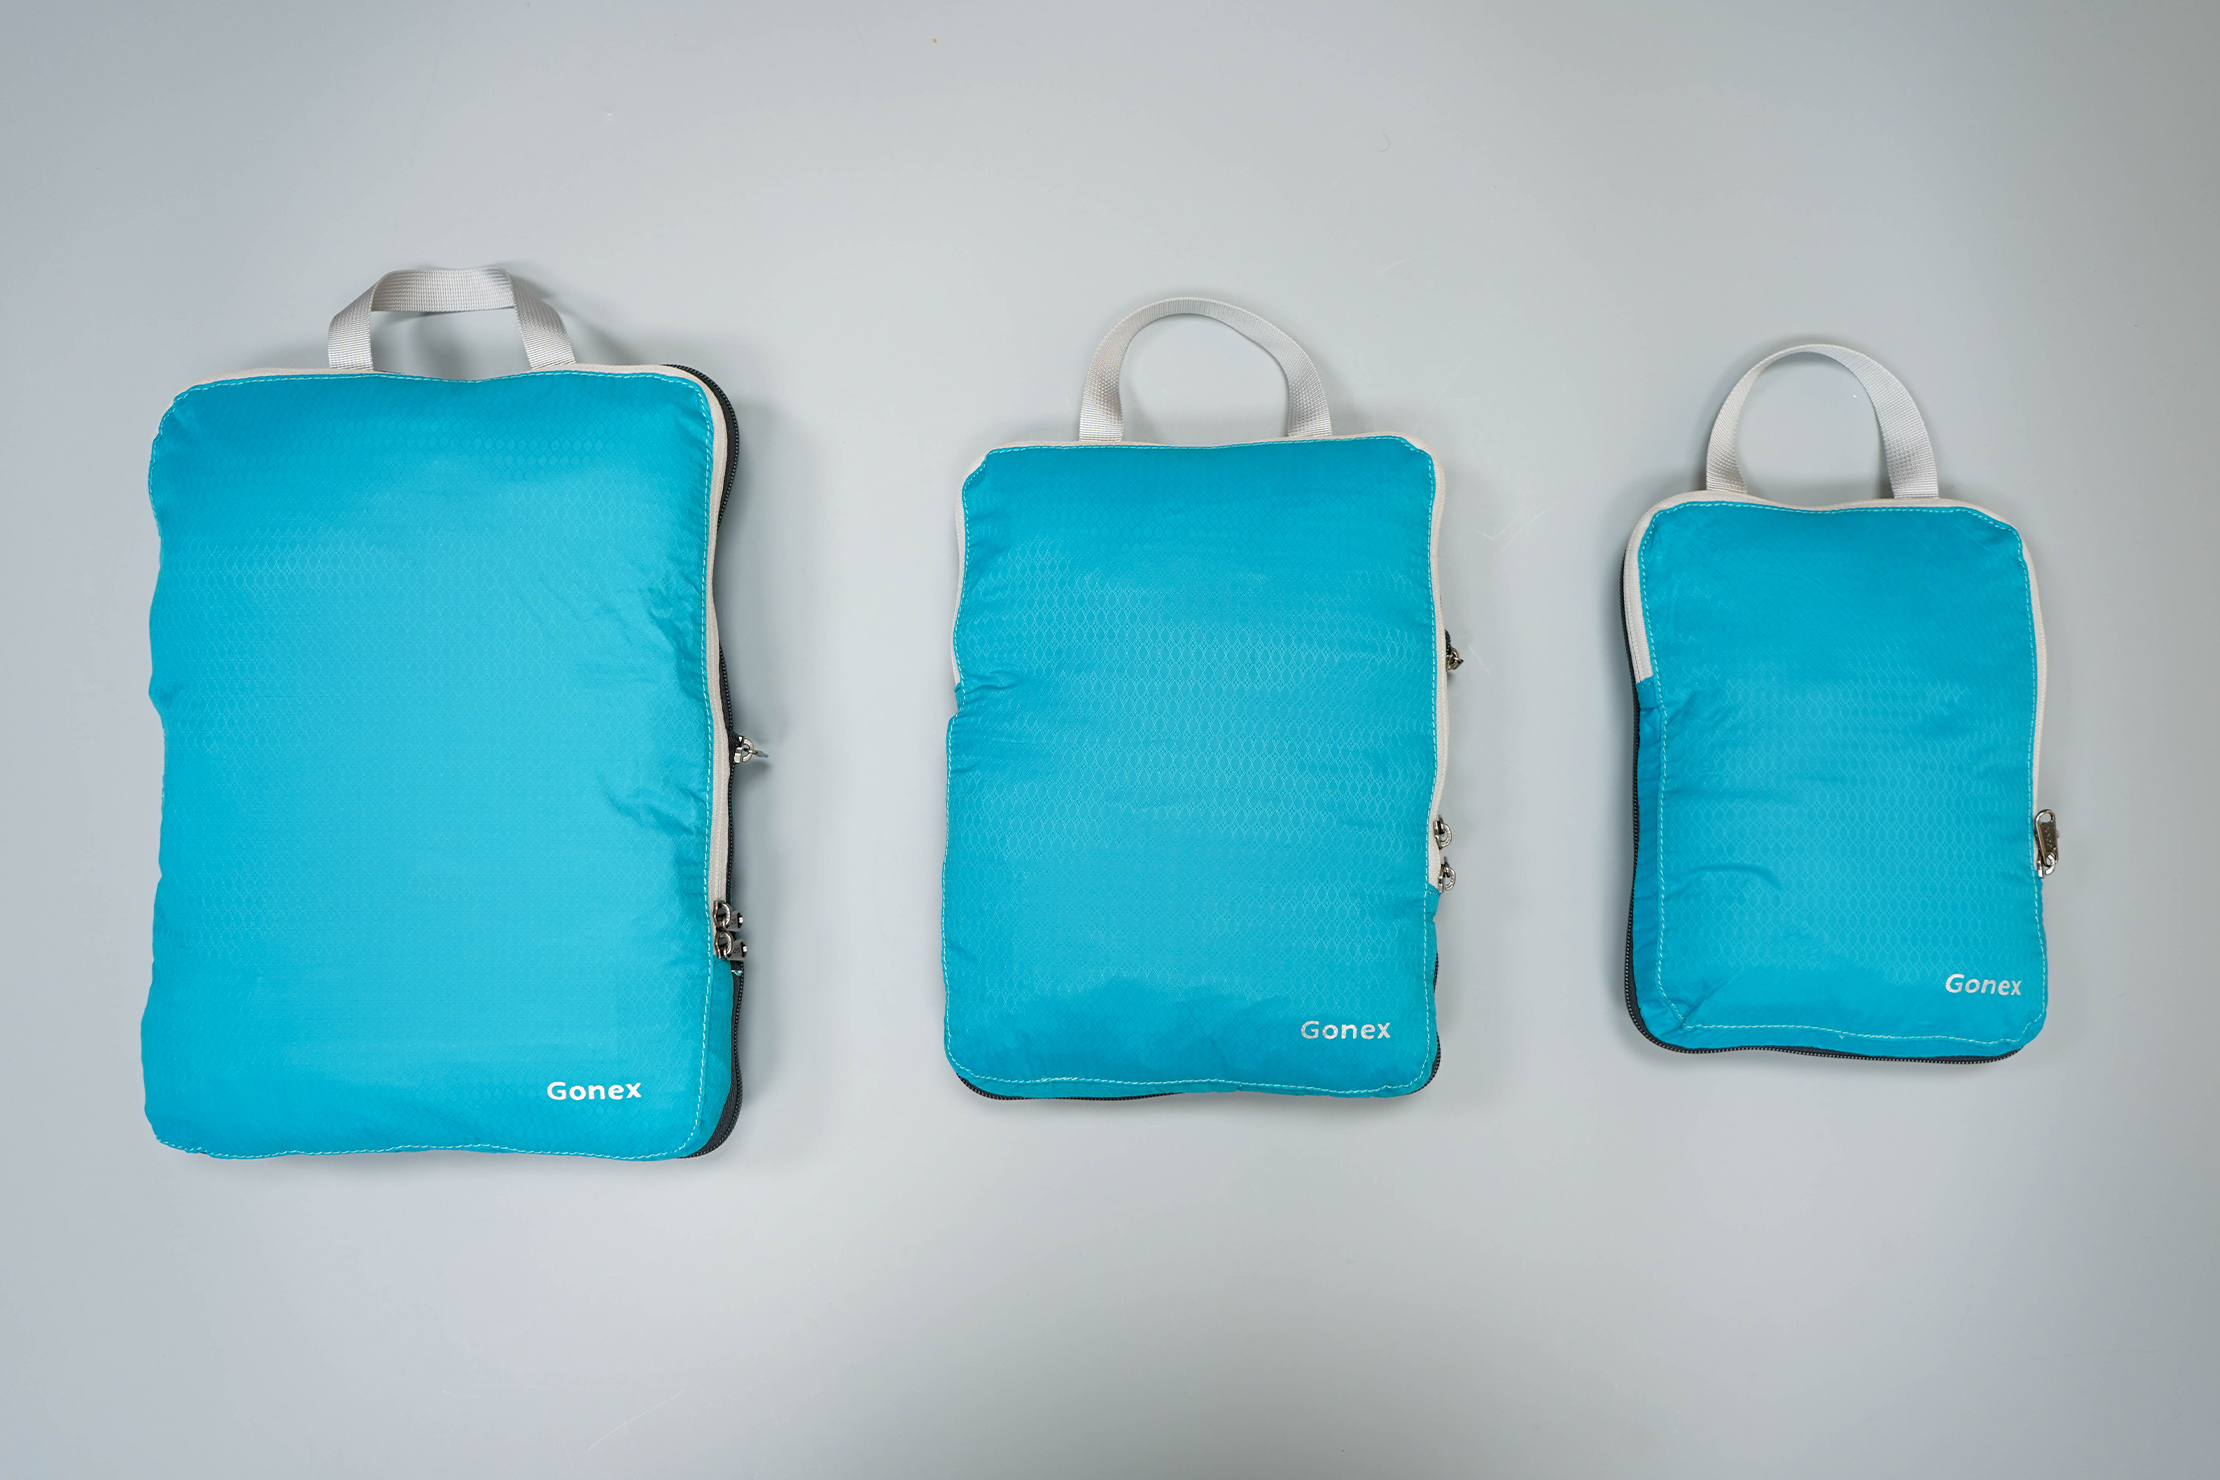 Gonex Compression Packing Cubes Sizes